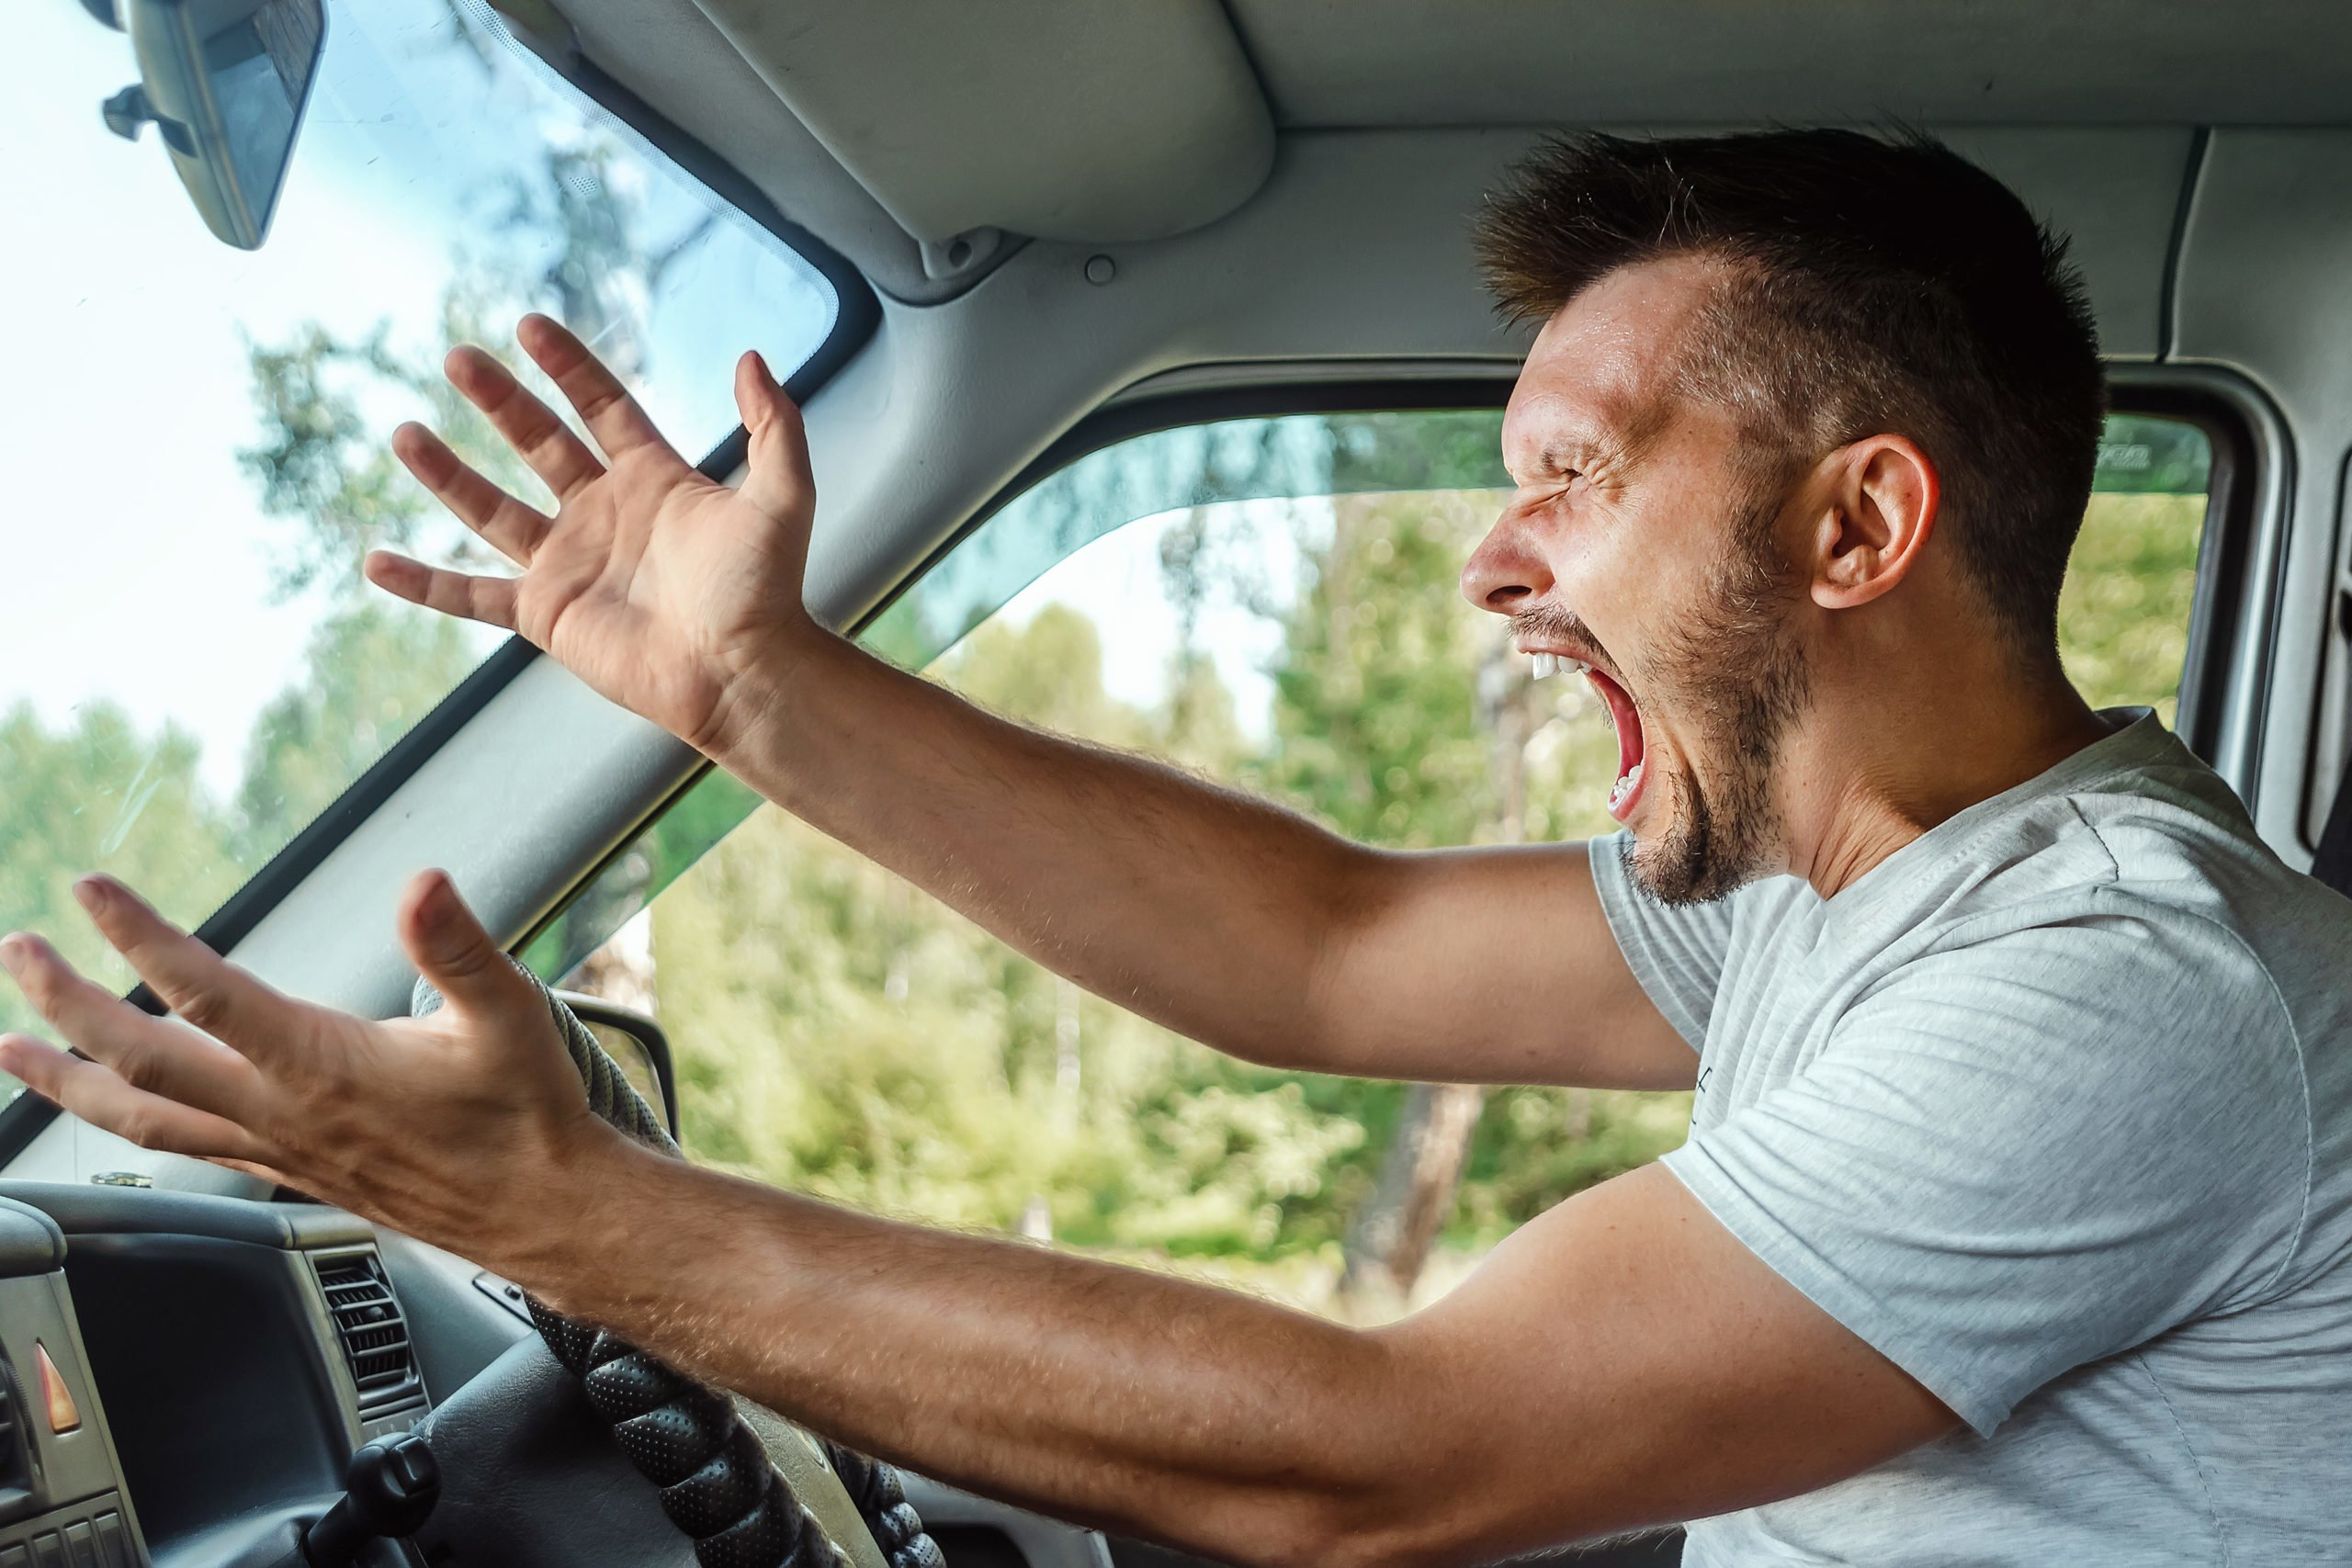 Picture showing an angry man driving